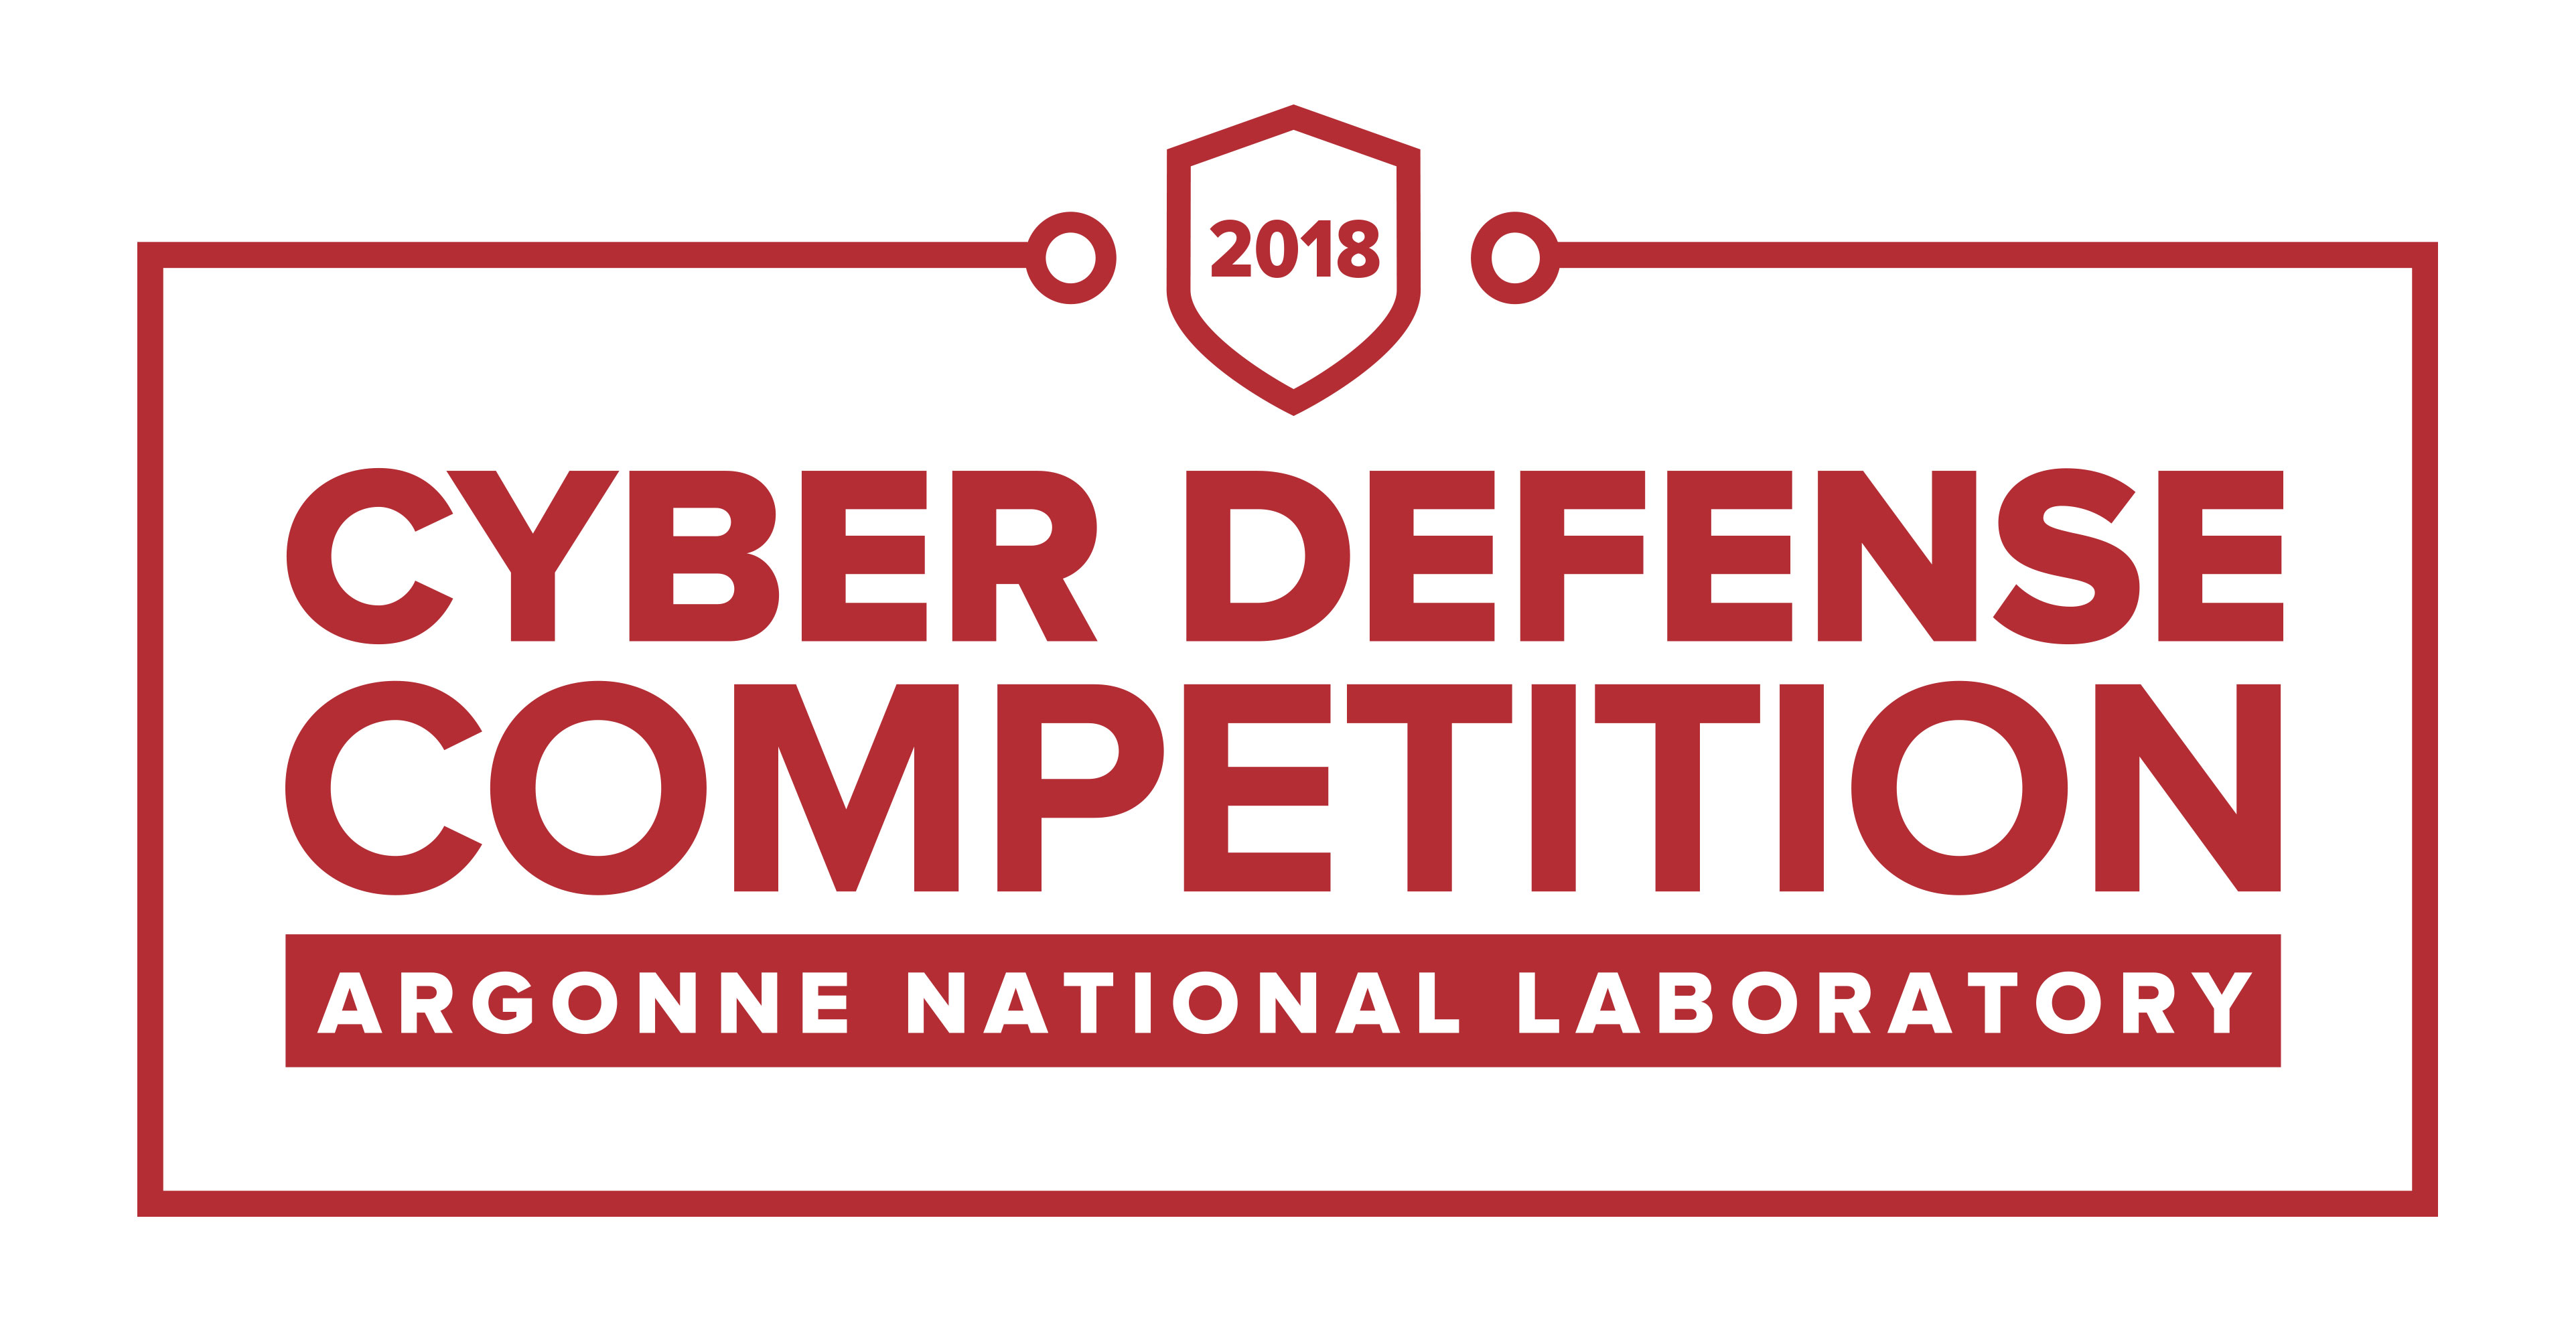 April 2018 Cyber Defense Competition Argonne National Laboratory Logo